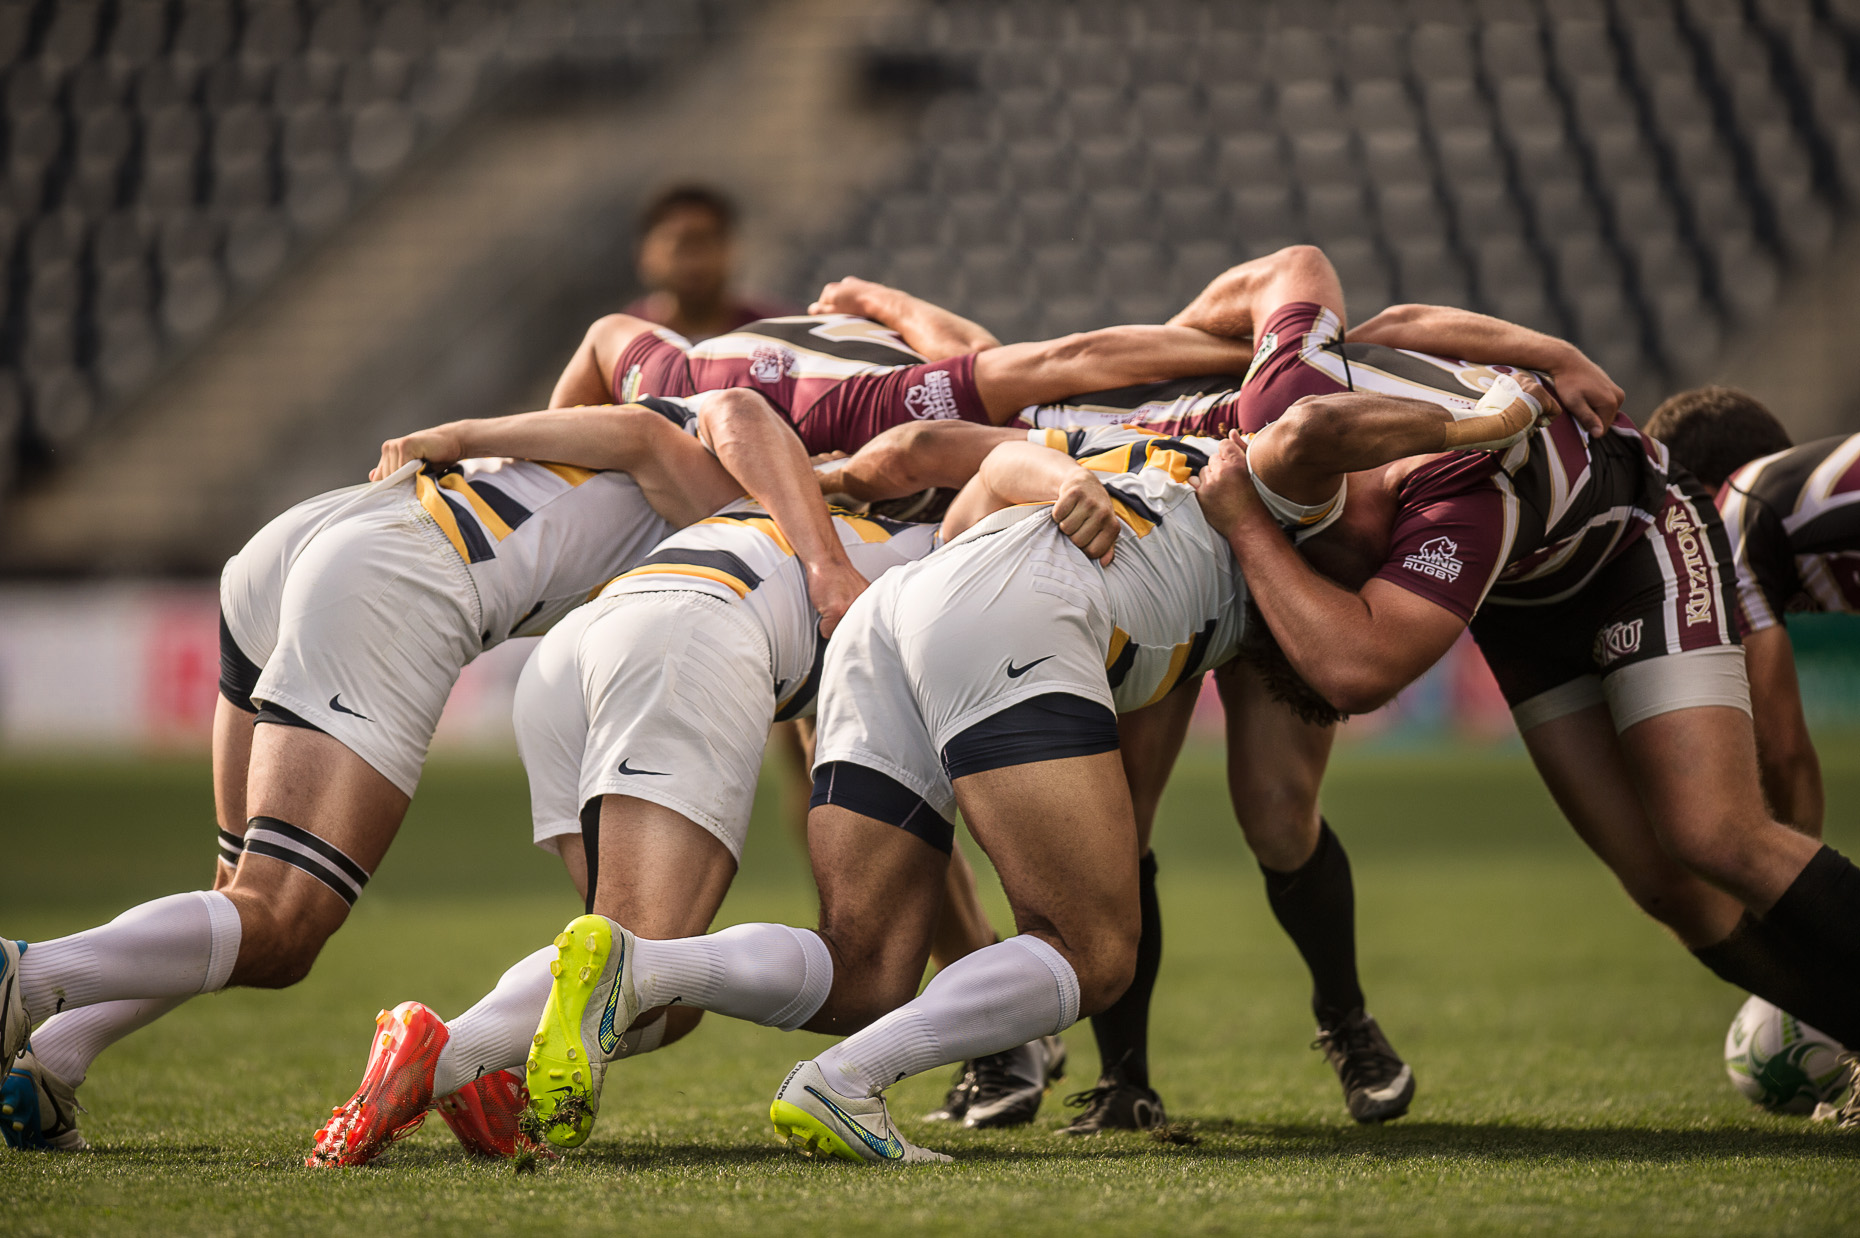 commercial-rugby-sports-men-scrum